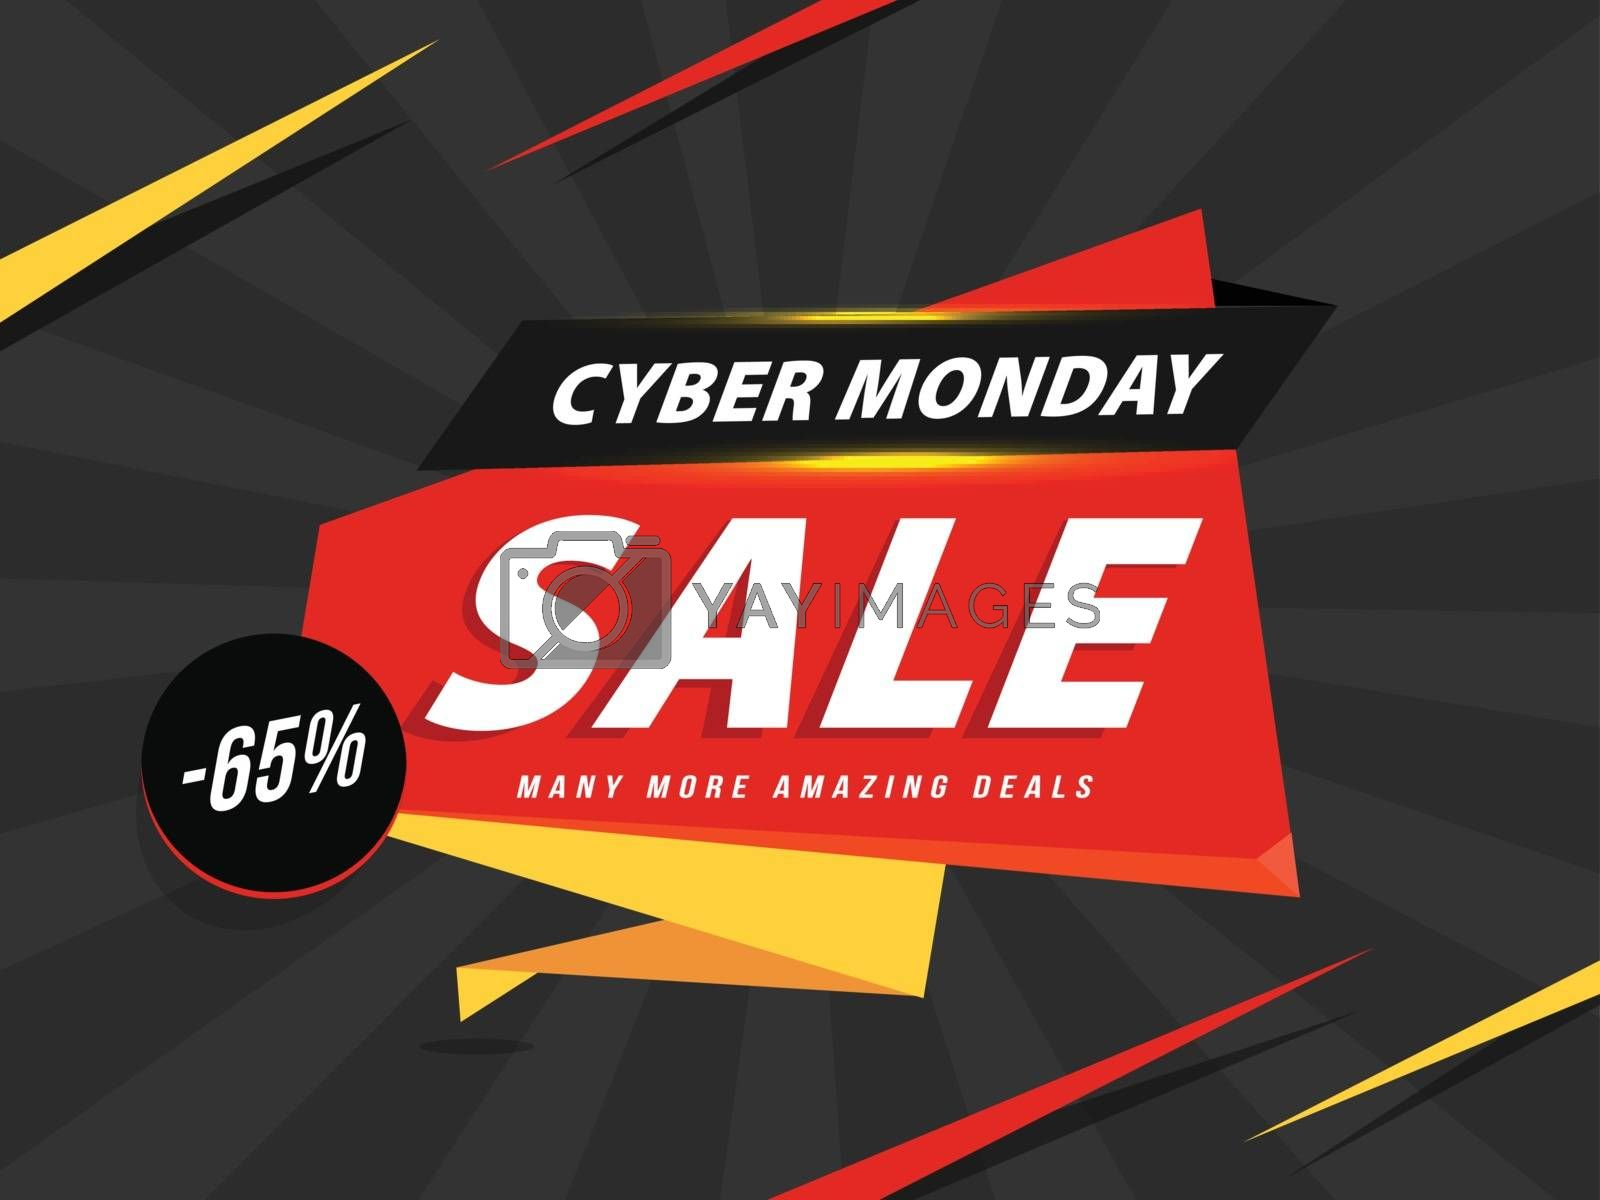 Sale sticker or ribbon with -65% discount offer for Cyber Monday Sale.